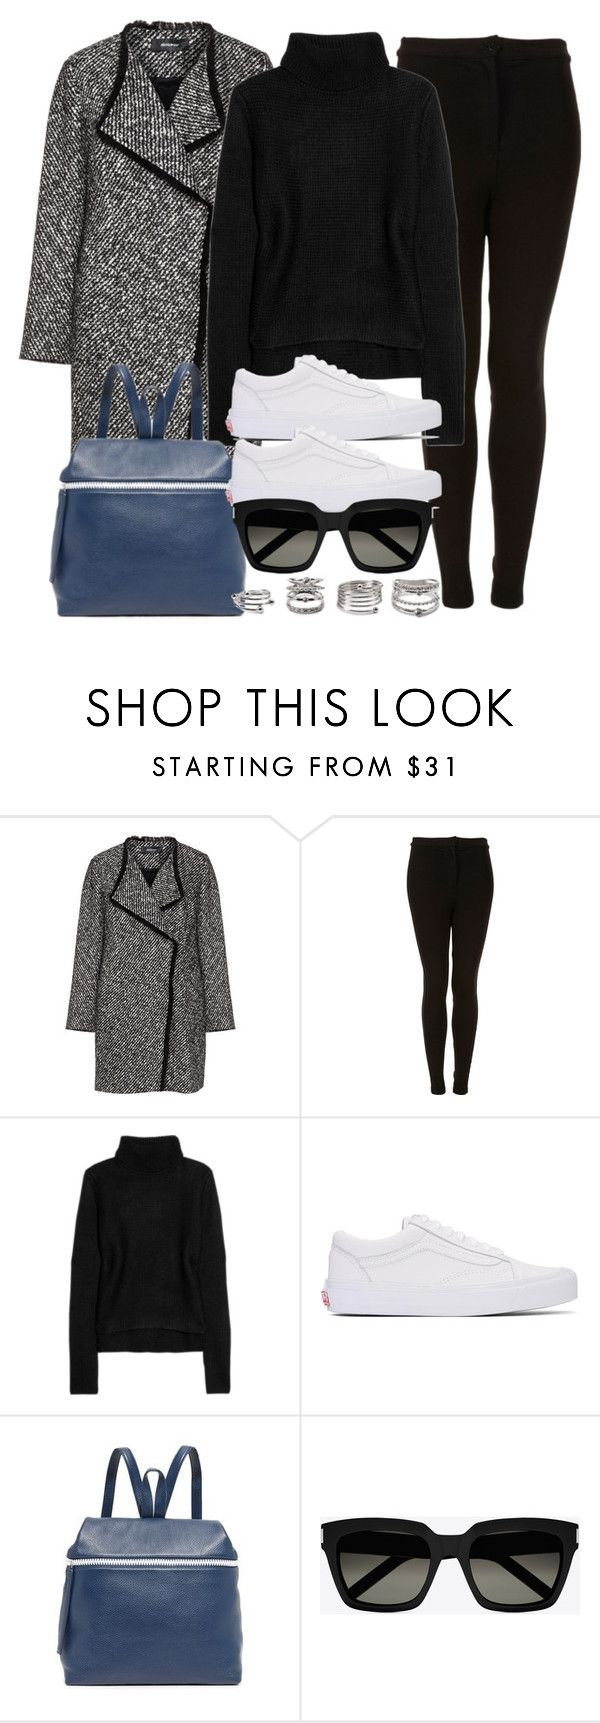 """""""Style #11714"""" by vany-alvarado ❤ liked on Polyvore featuring Elena Mirò, Topshop, T By Alexander Wang, Vans, Kara, Yves Saint Laurent and Forever 21"""